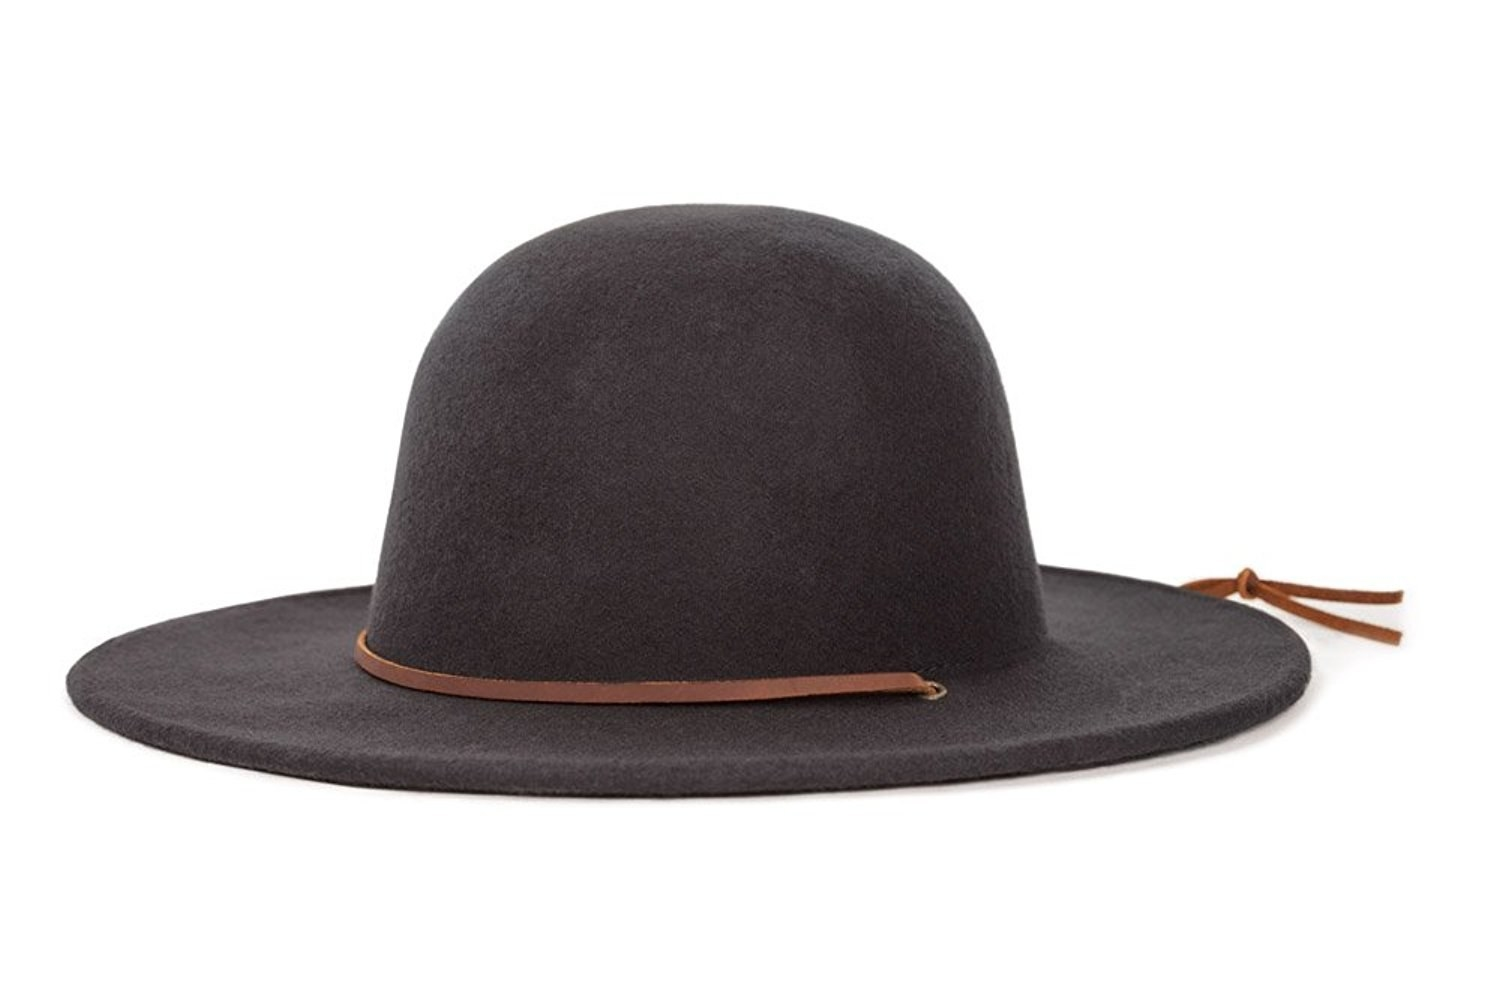 ef286afa19d A wide brim felt hat to make you look pulled together even on days you re  definitely not.